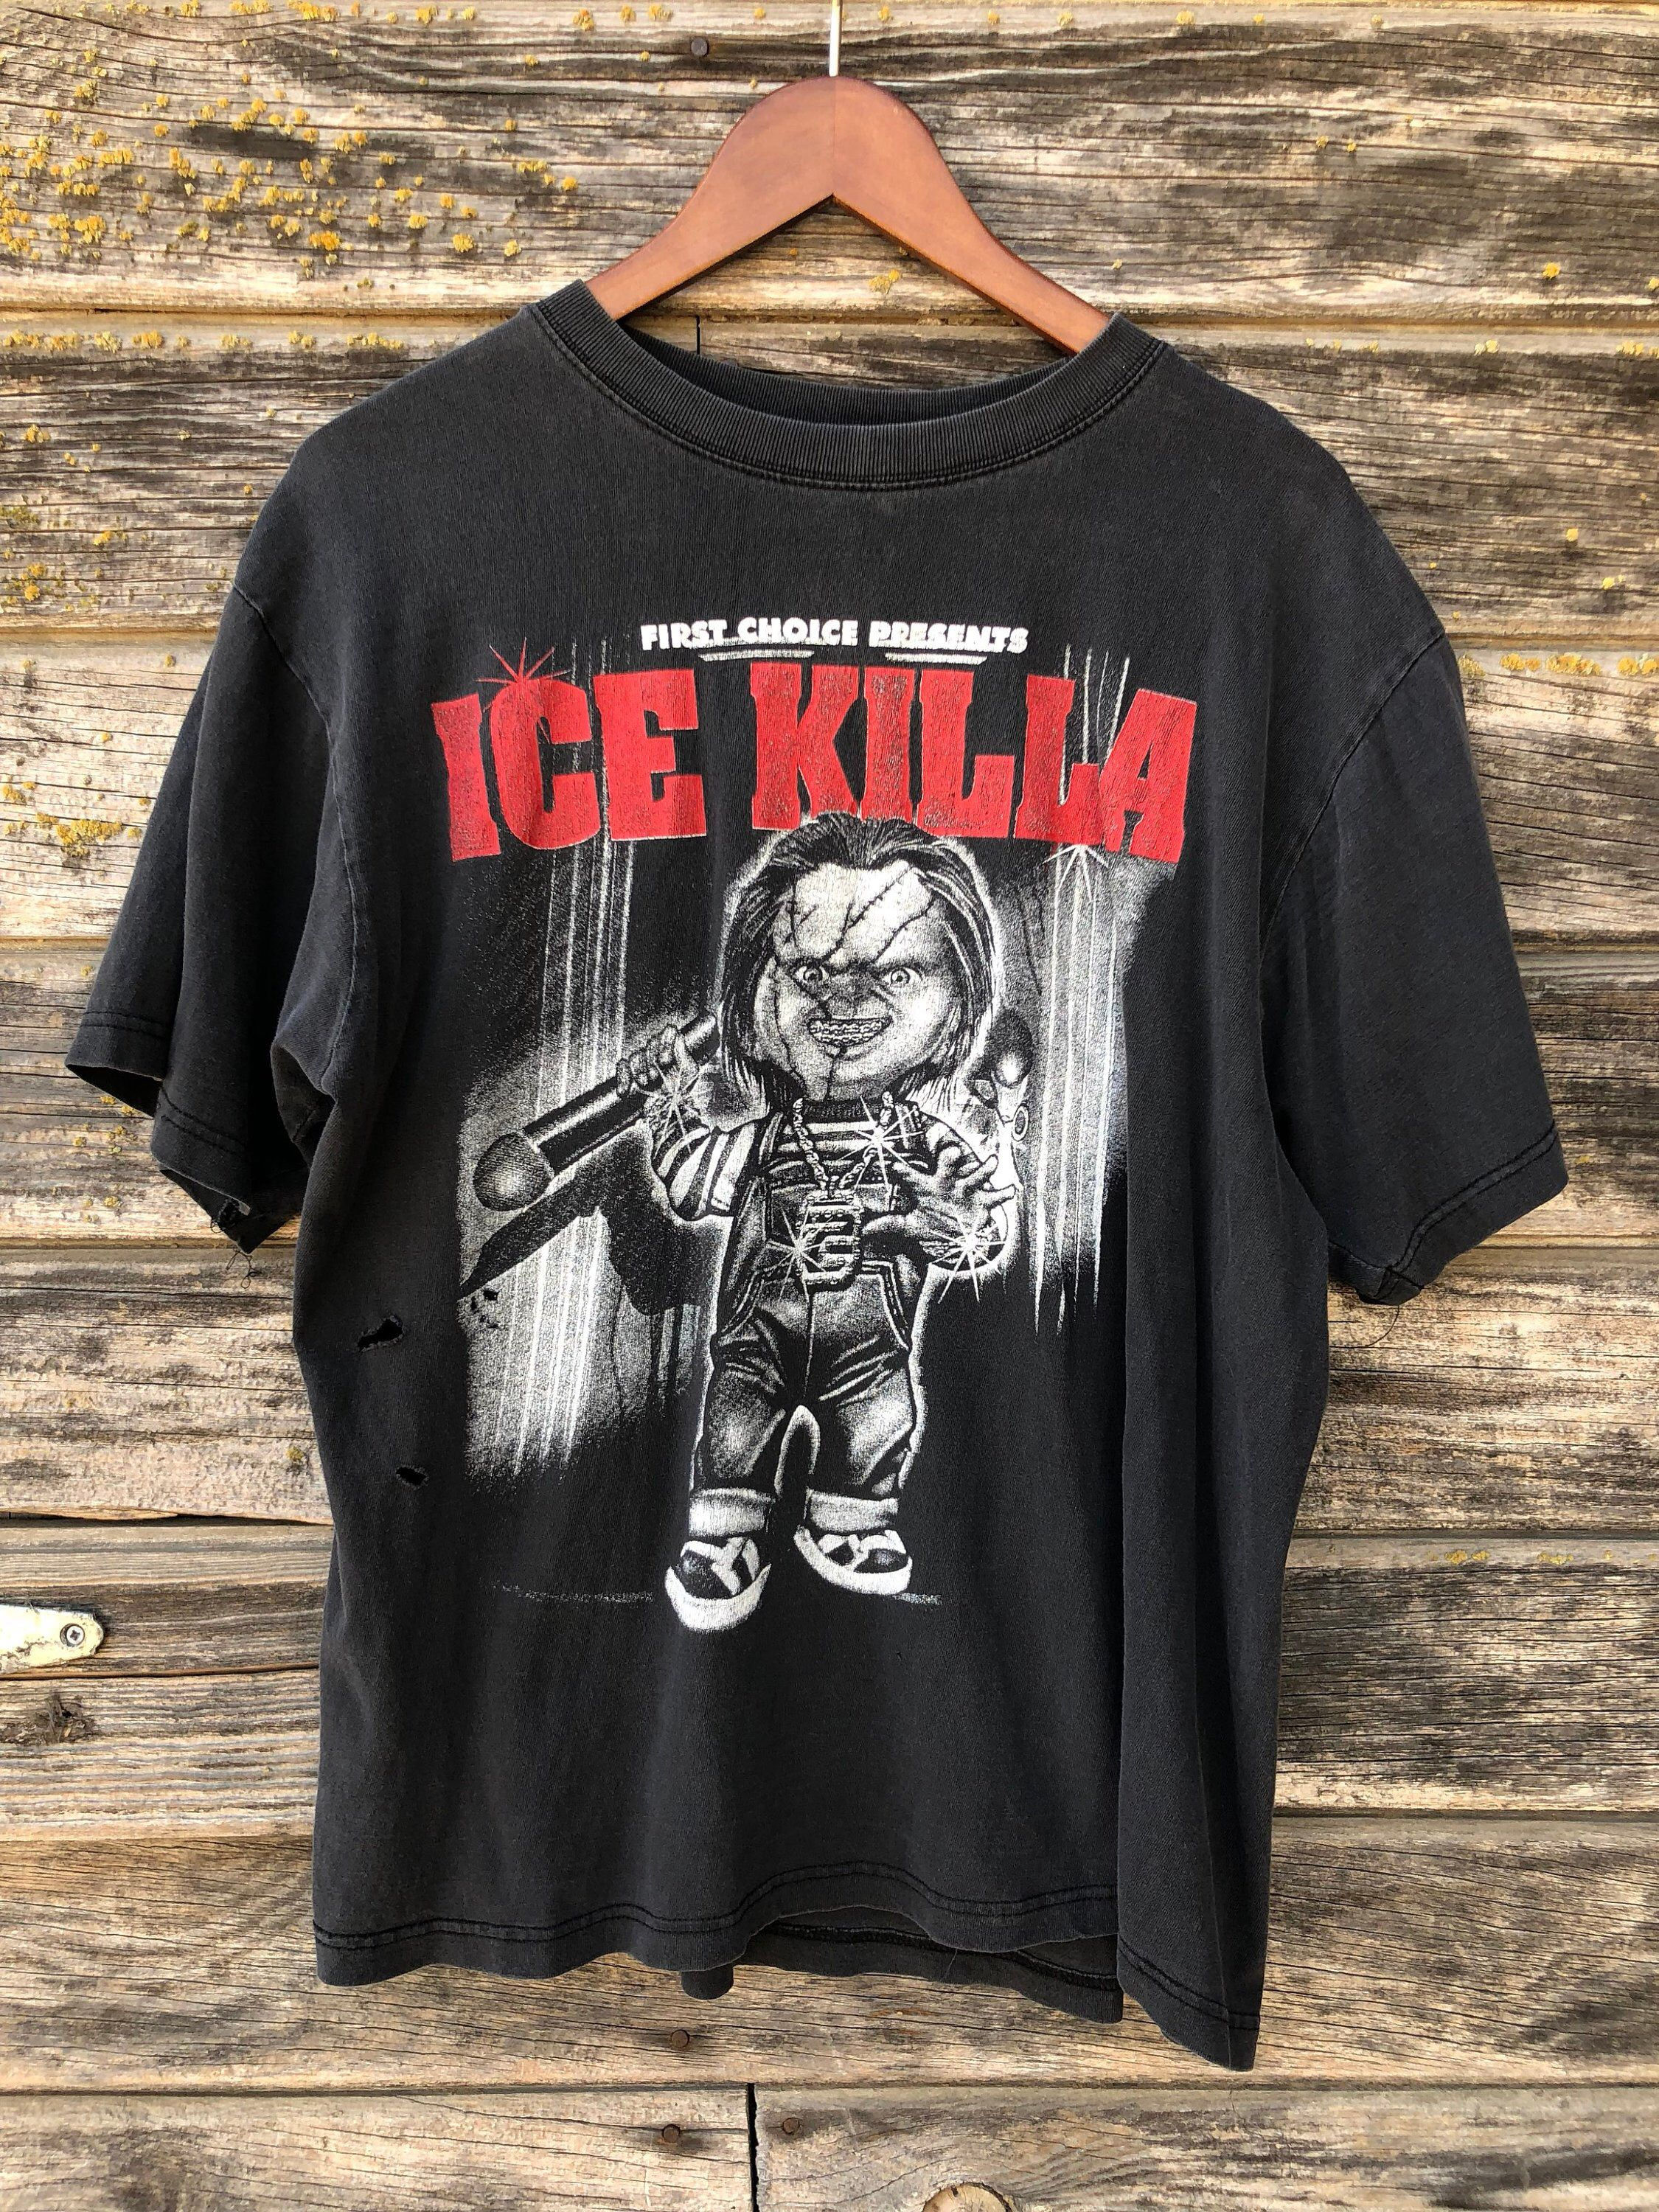 8f612289d5c Vintage Ice Killa Chucky T-shirt L large vtg faded black graphic tee 90s  grunge distressed shirt First Choice Presents